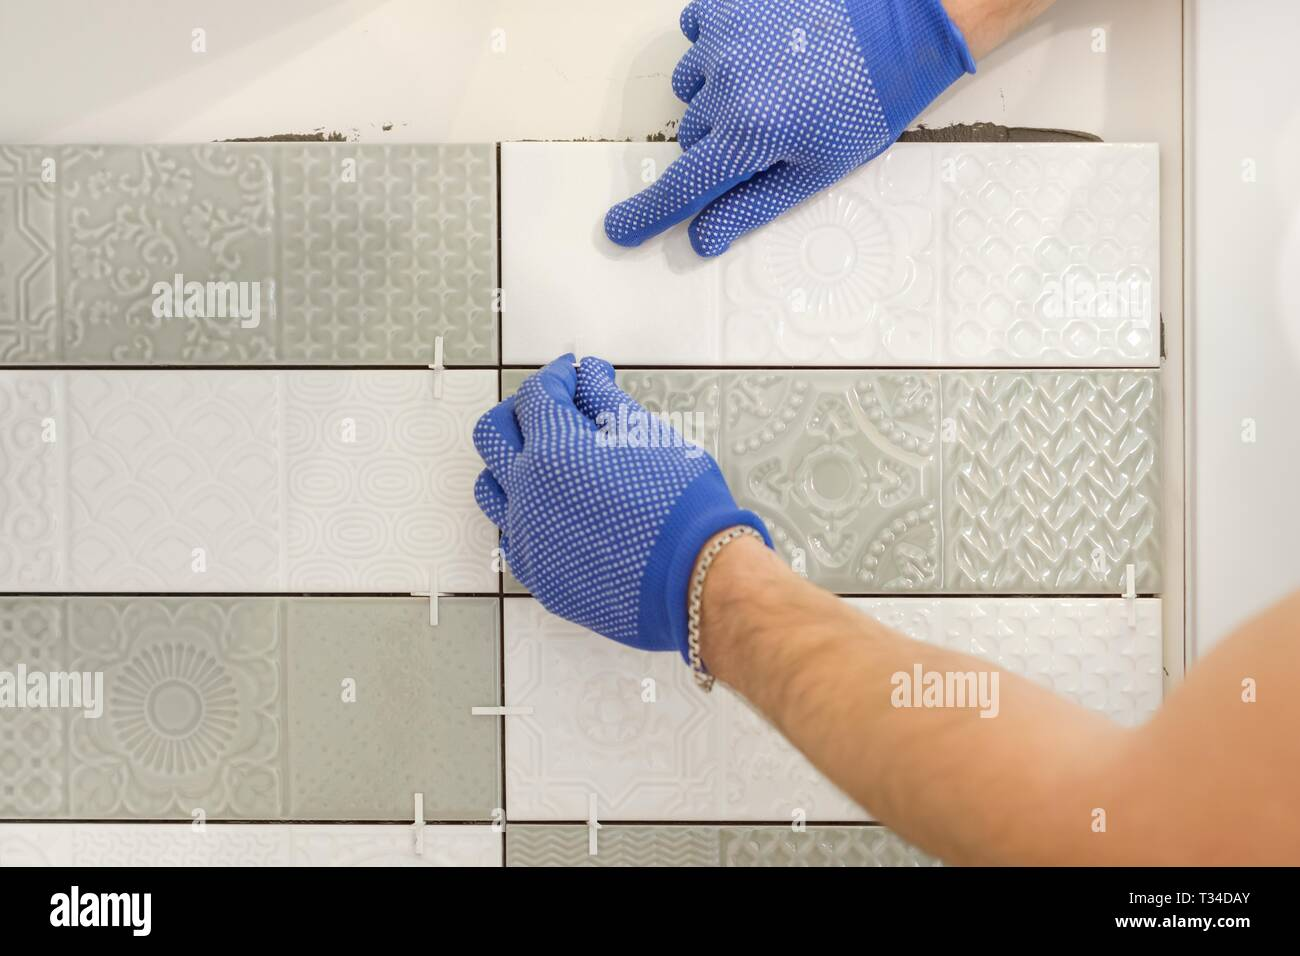 Installing ceramic tiles on the wall in kitchen. Placing tile spacers with hands, renovation, repair, construction. - Stock Image